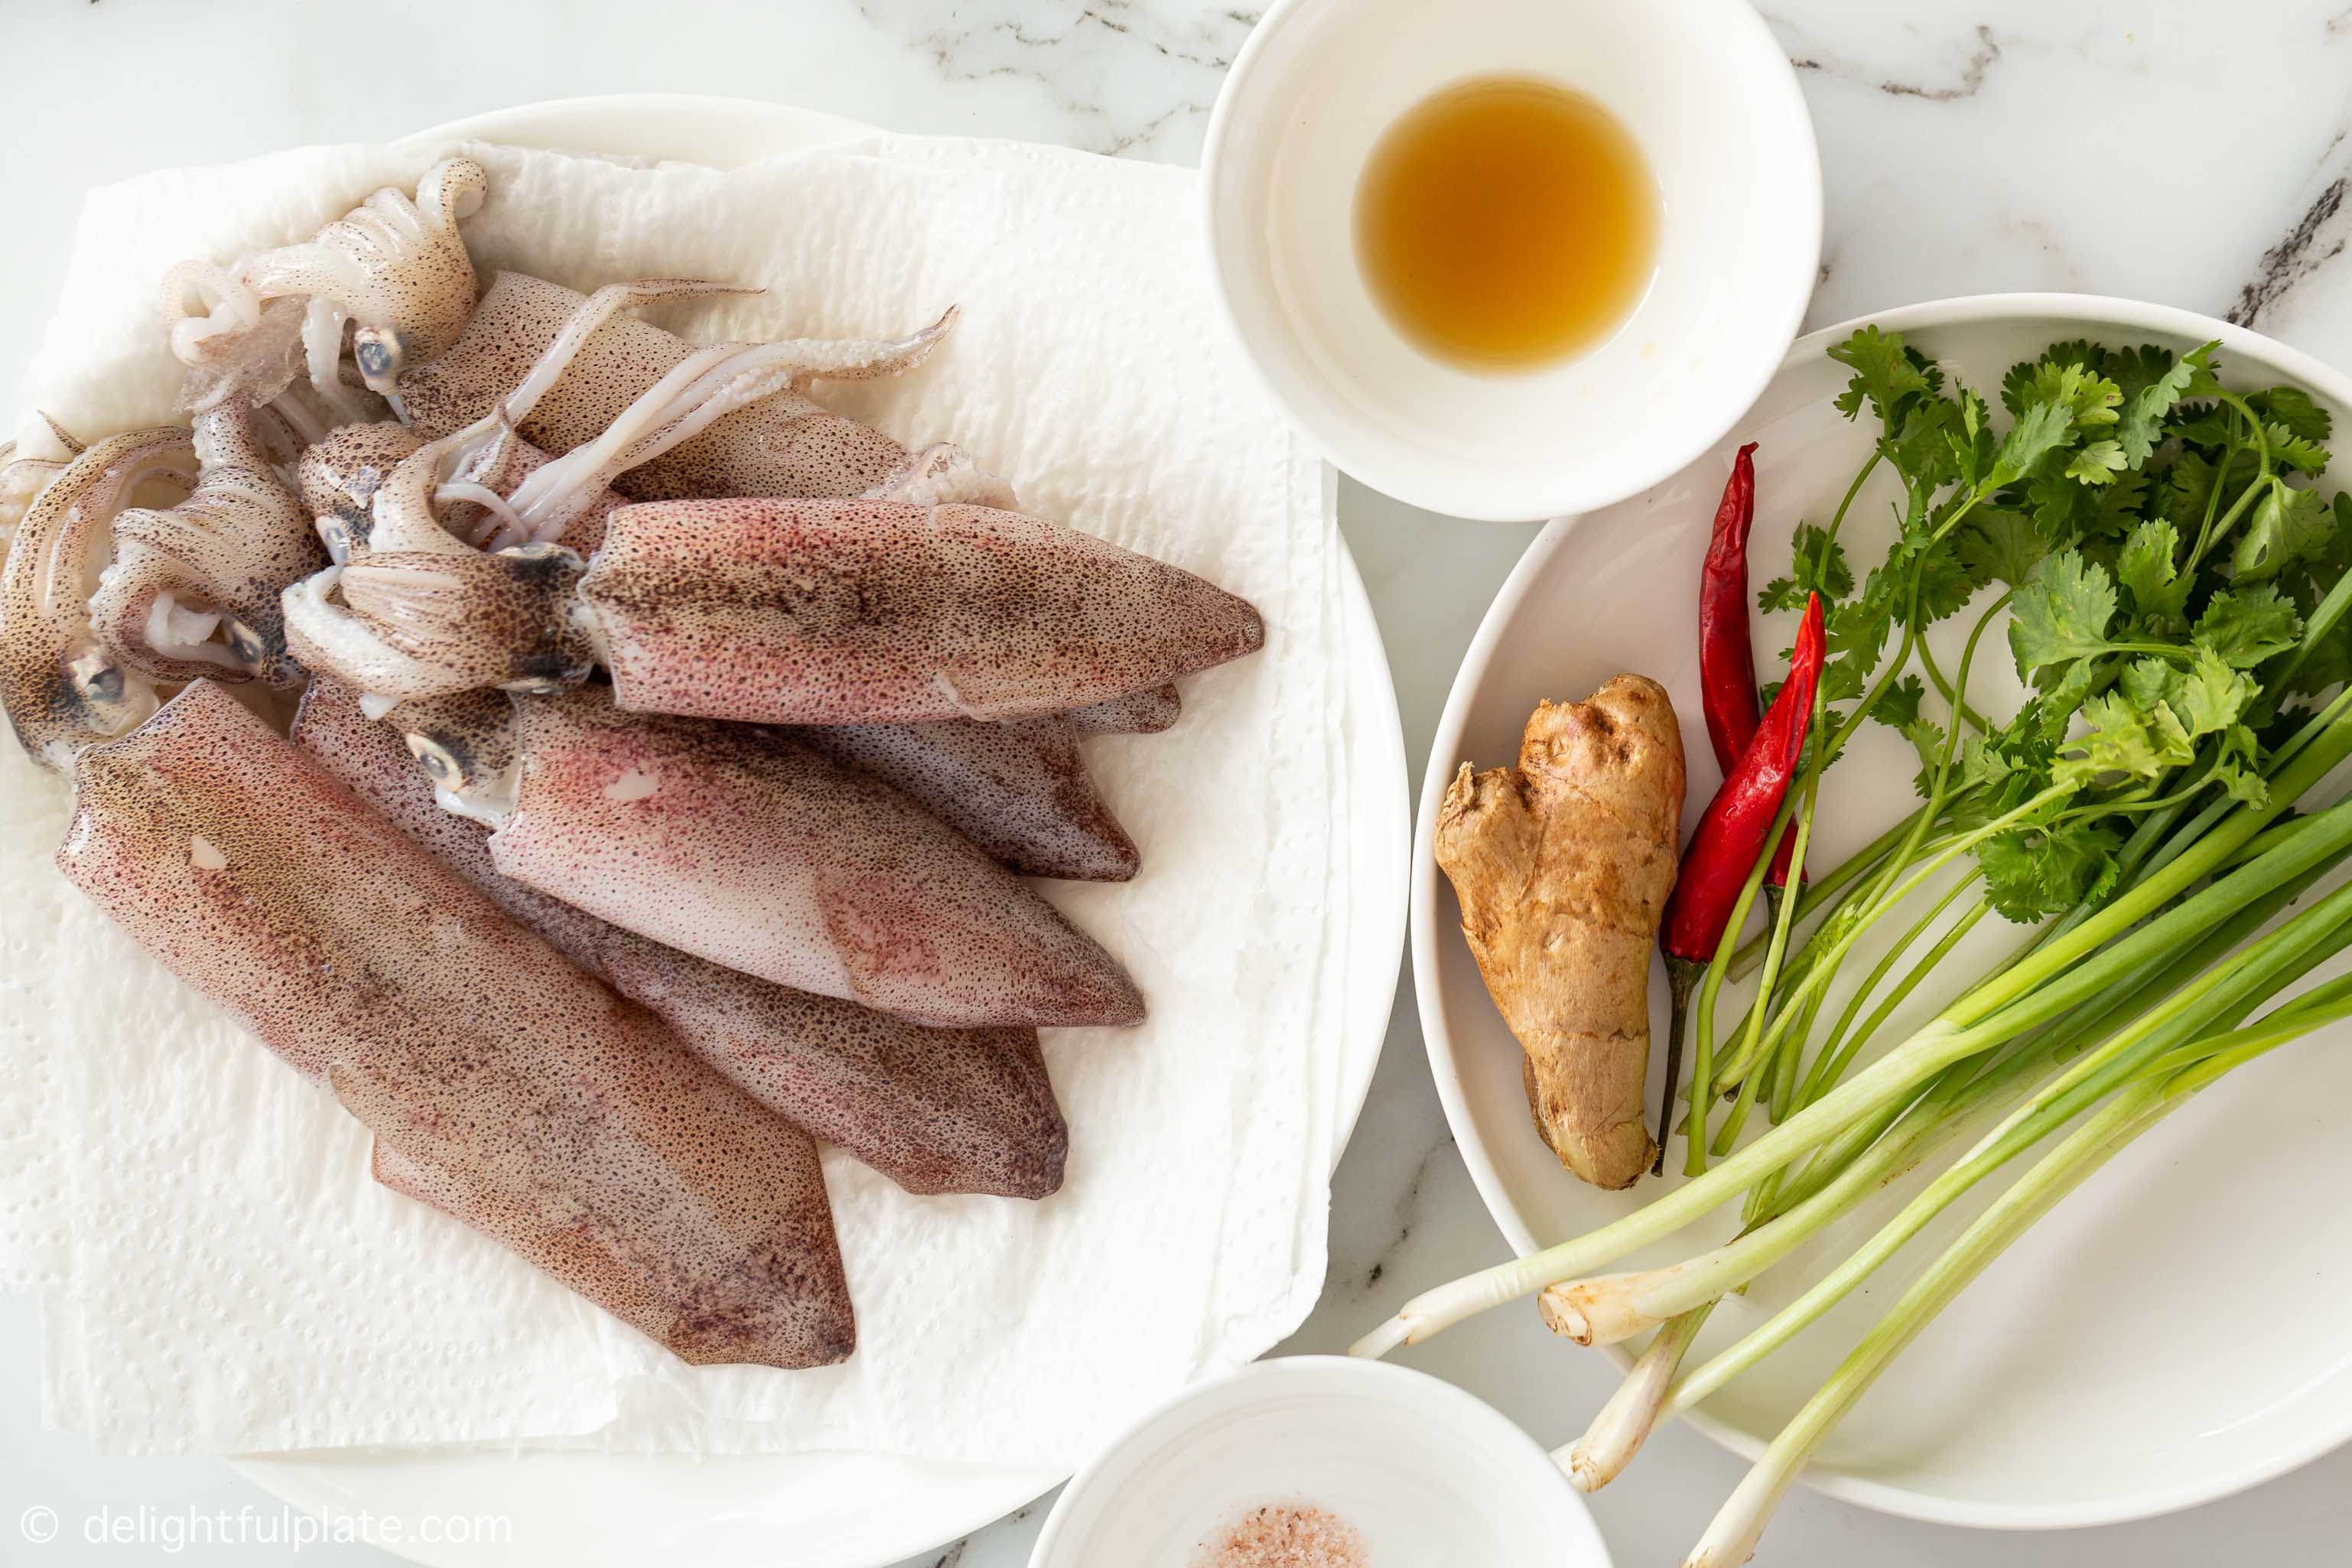 plates containing ingredients for this steamed fish recipe